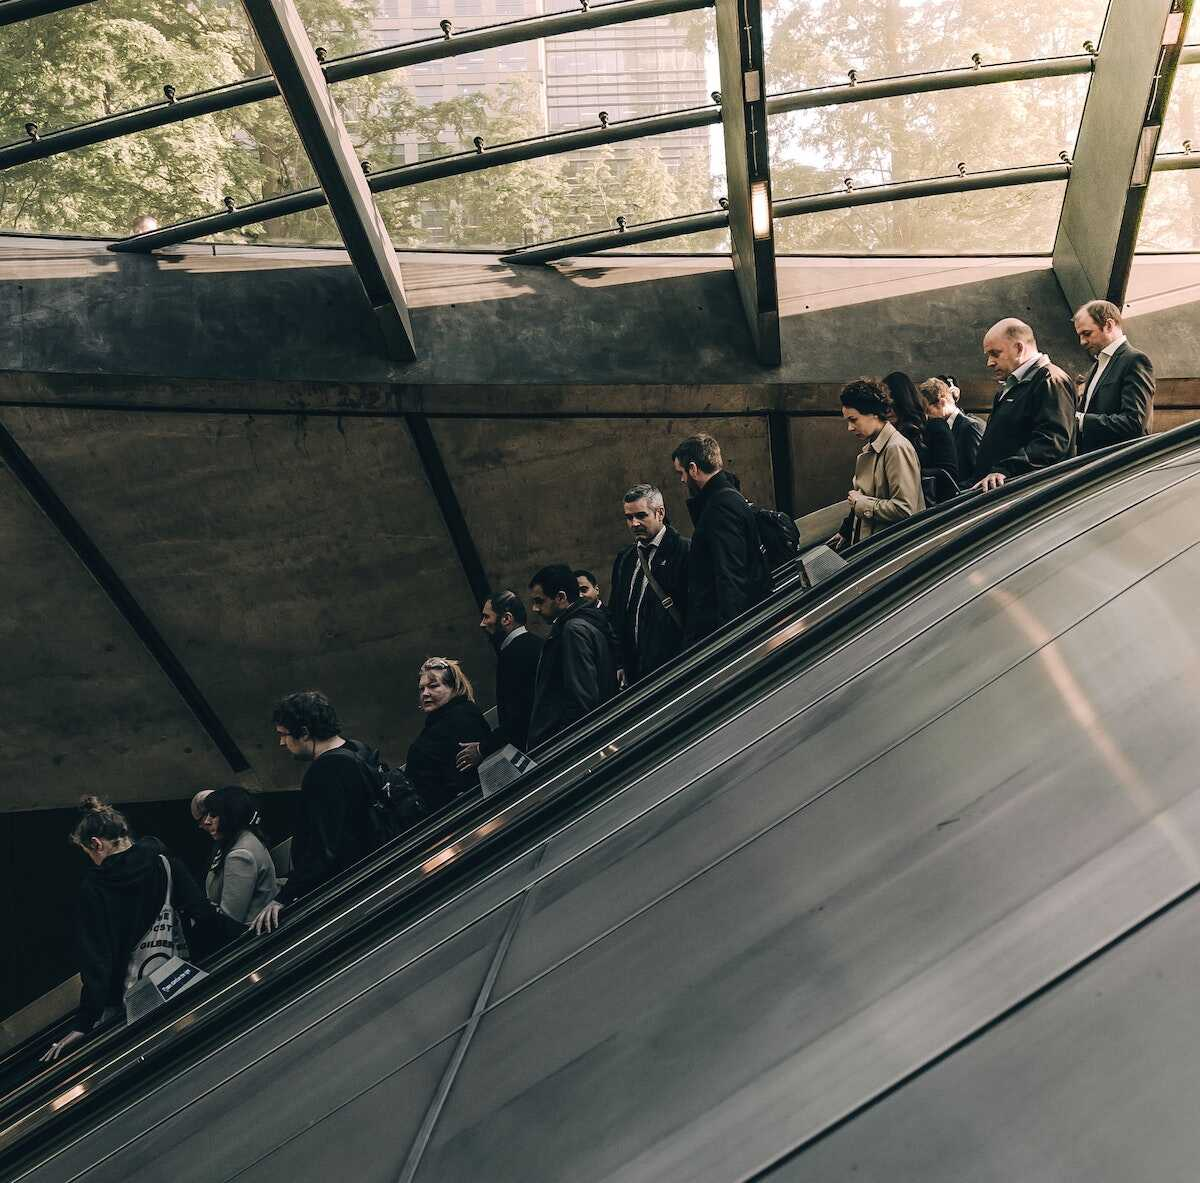 A London escalator at rush hour with lots of commuters